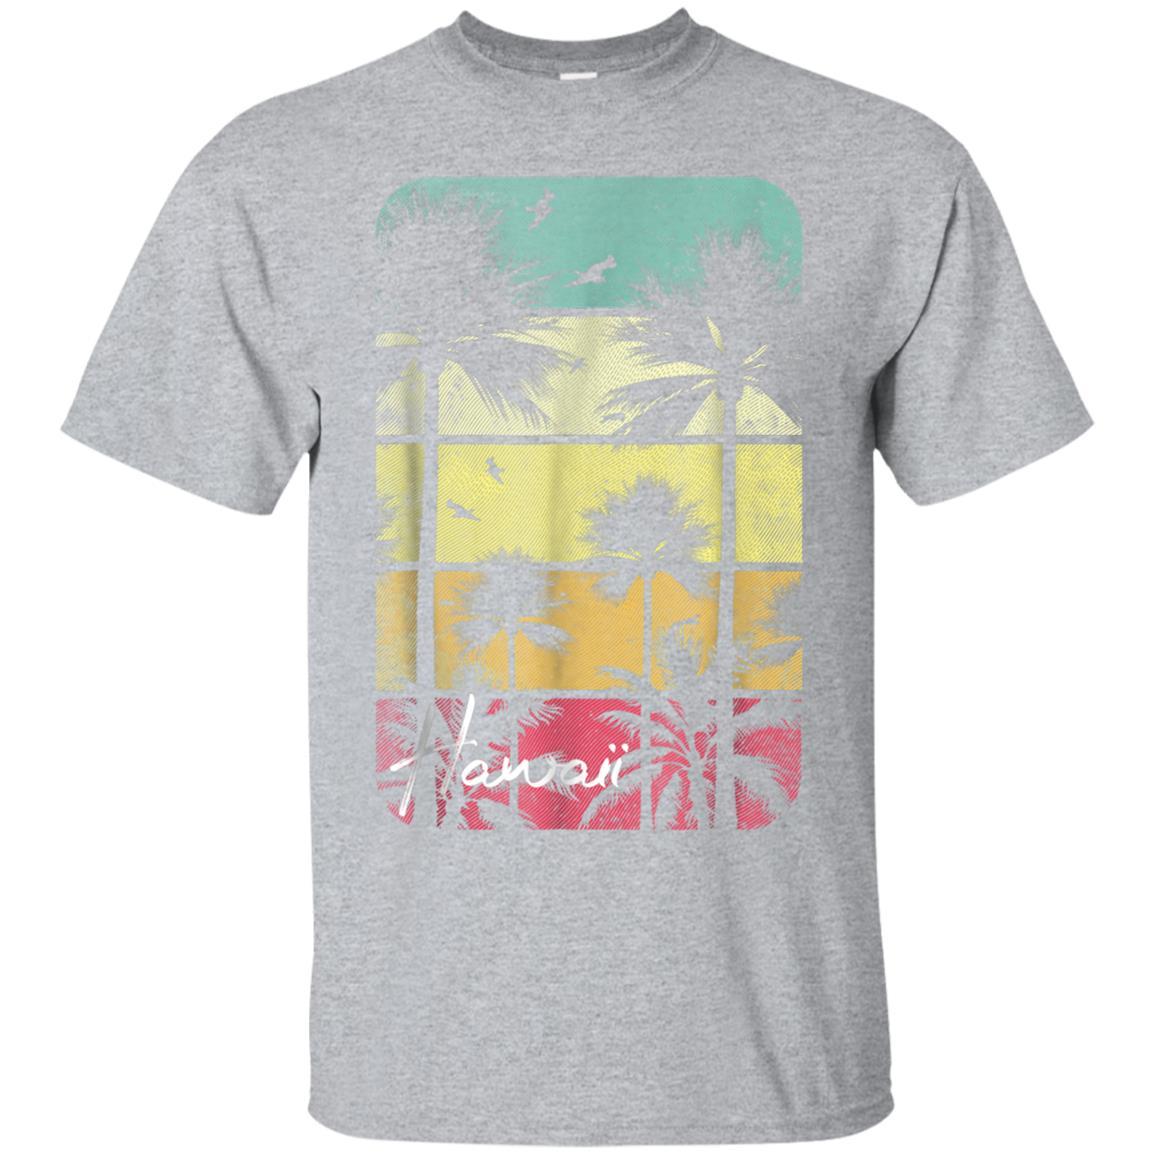 Retro Hawaii T Shirt Vintage Hawaiian Islands Aloha State 99promocode